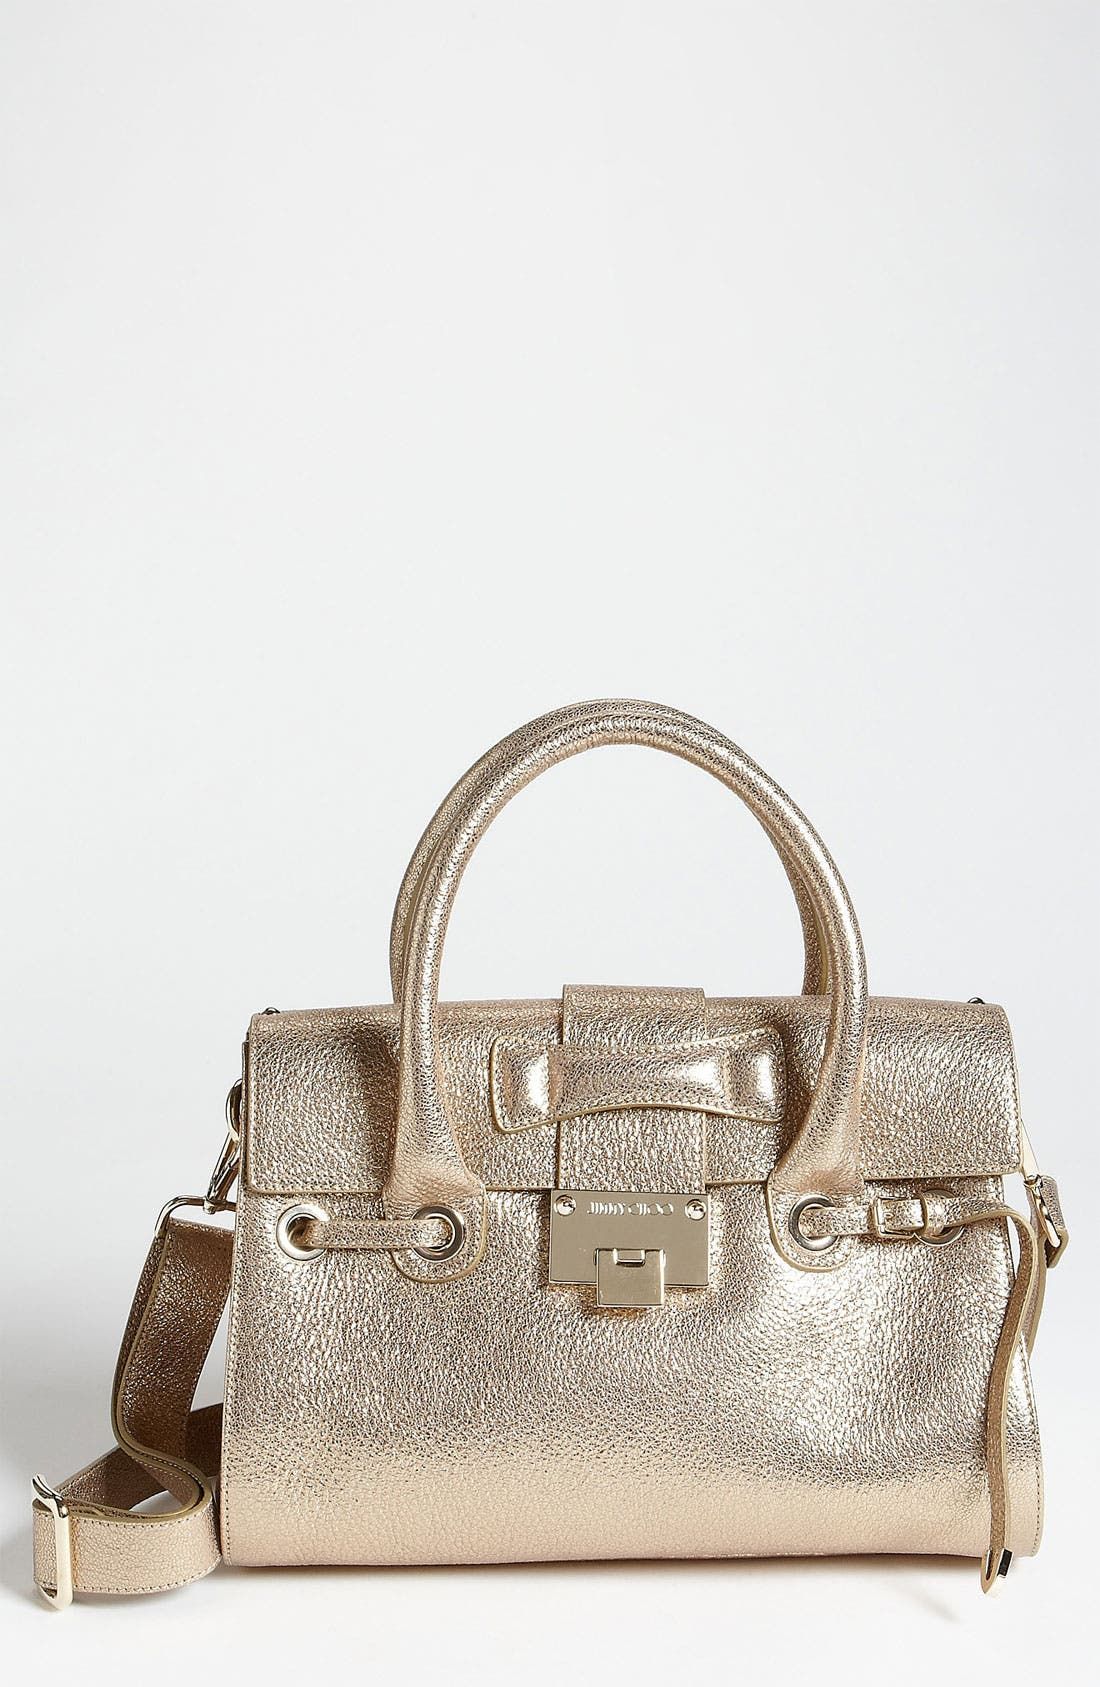 Main Image - Jimmy Choo 'Rosalie' Glitter Leather Satchel